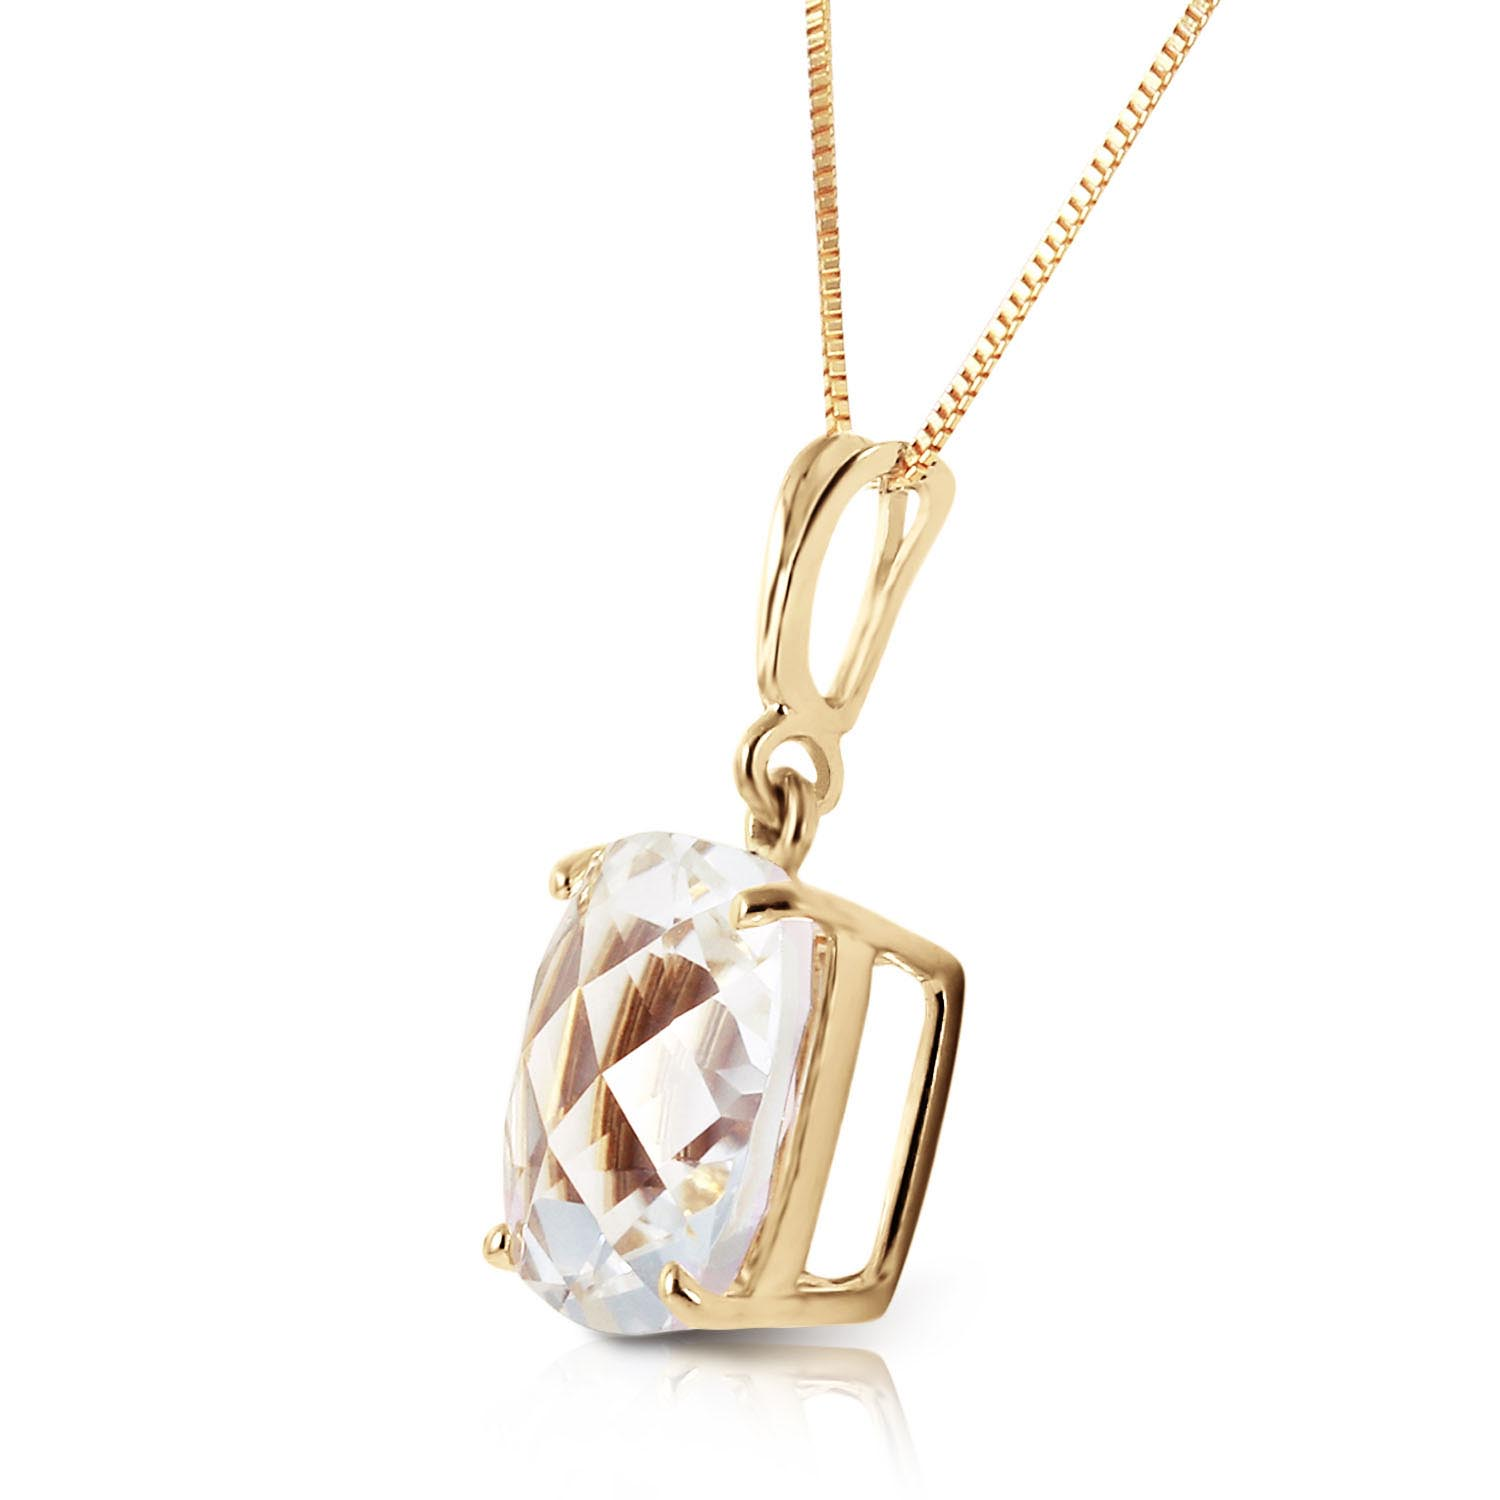 White Topaz Rococo Pendant Necklace 3.6ct in 14K Gold